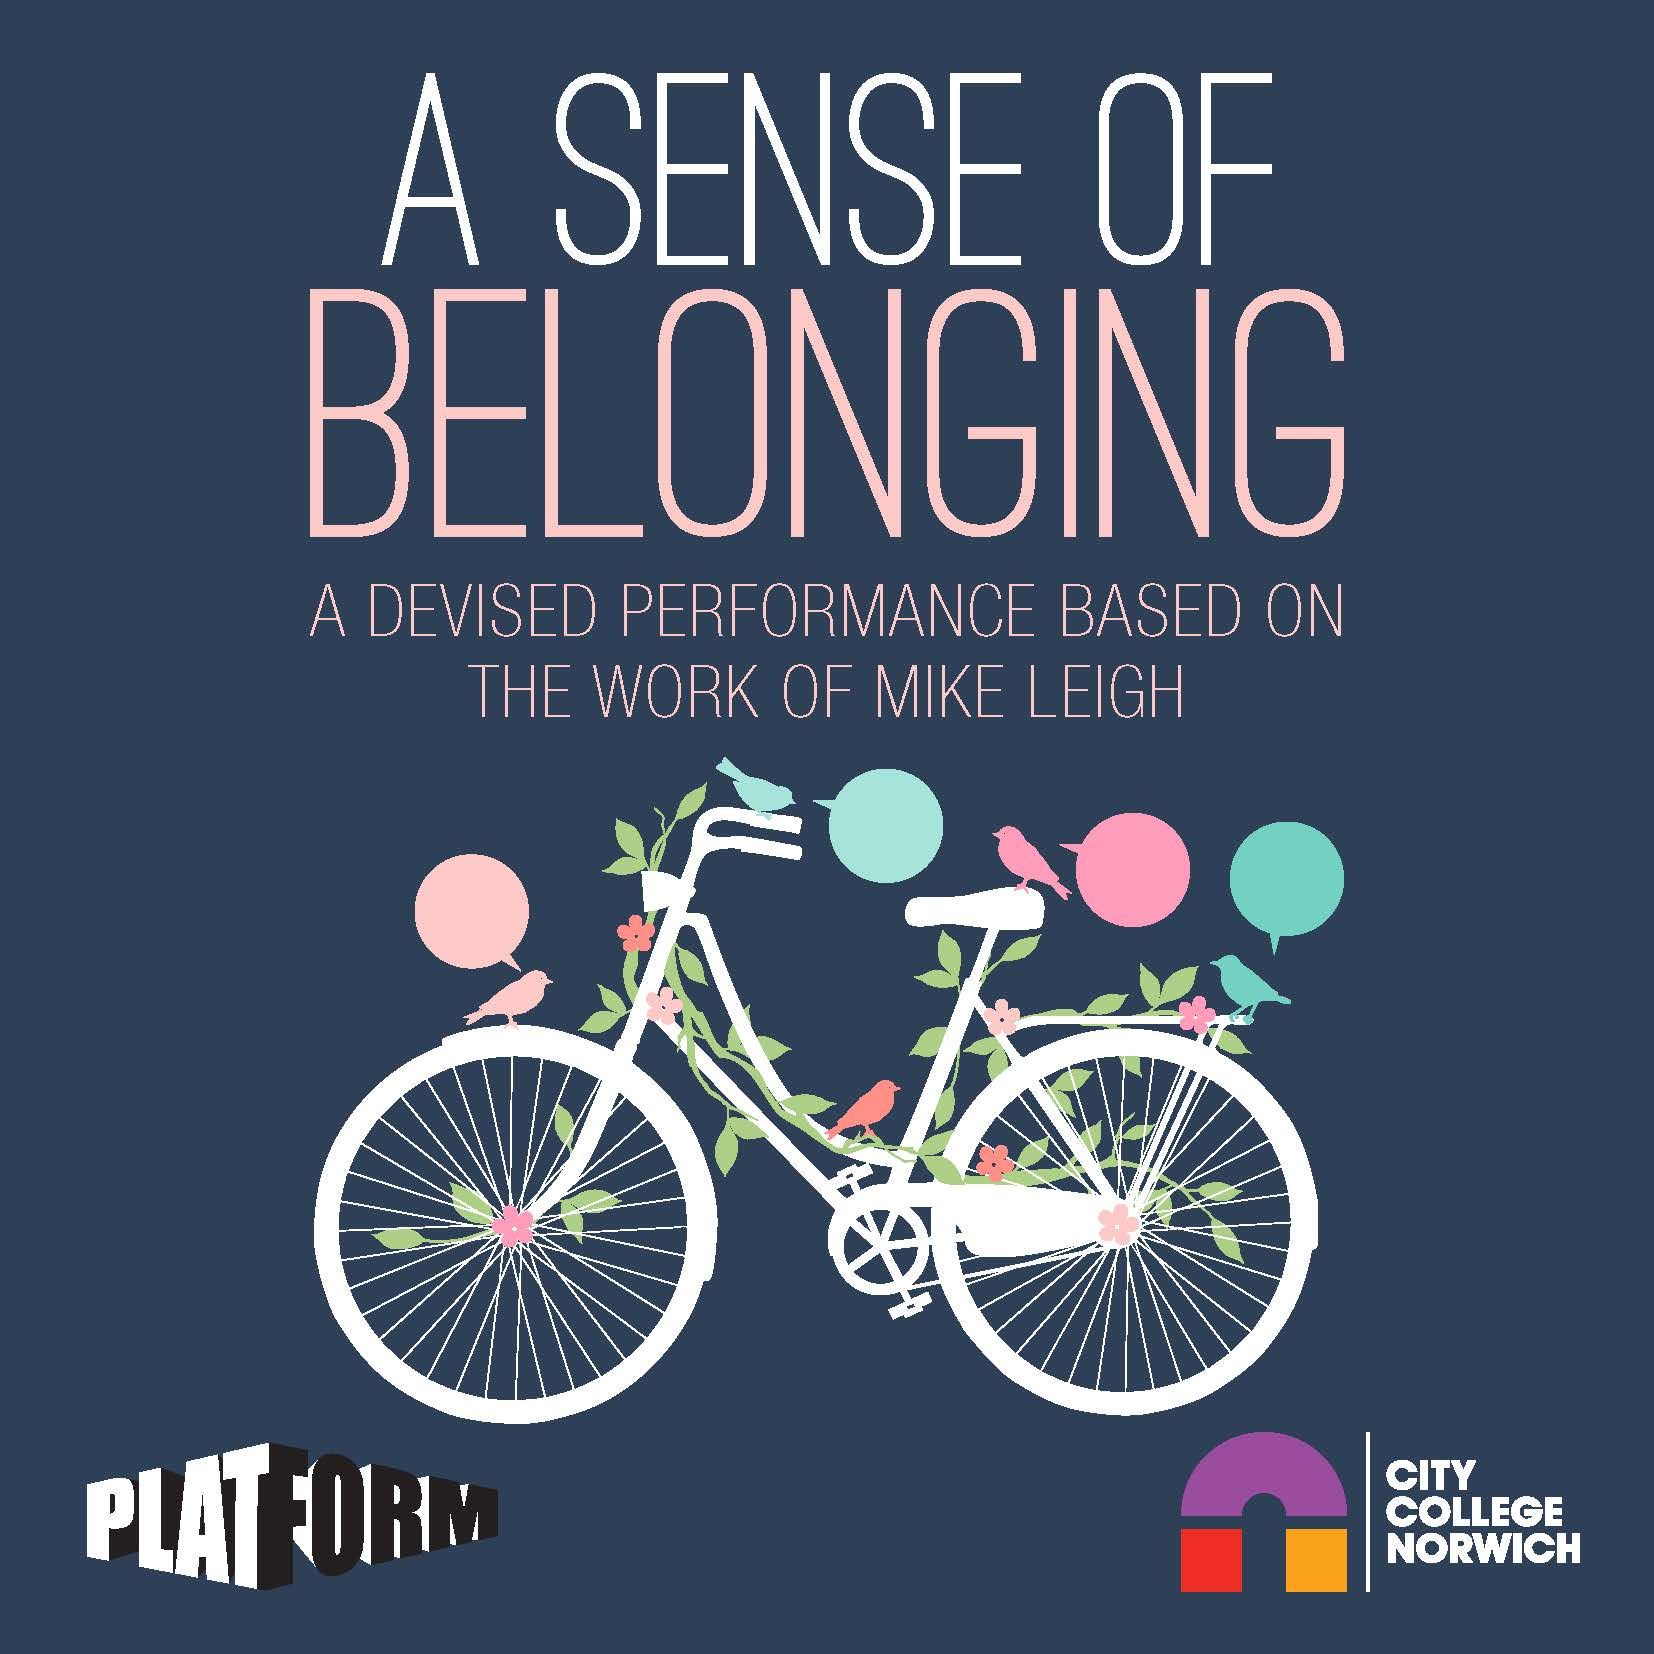 What Is a Sense of Belonging?